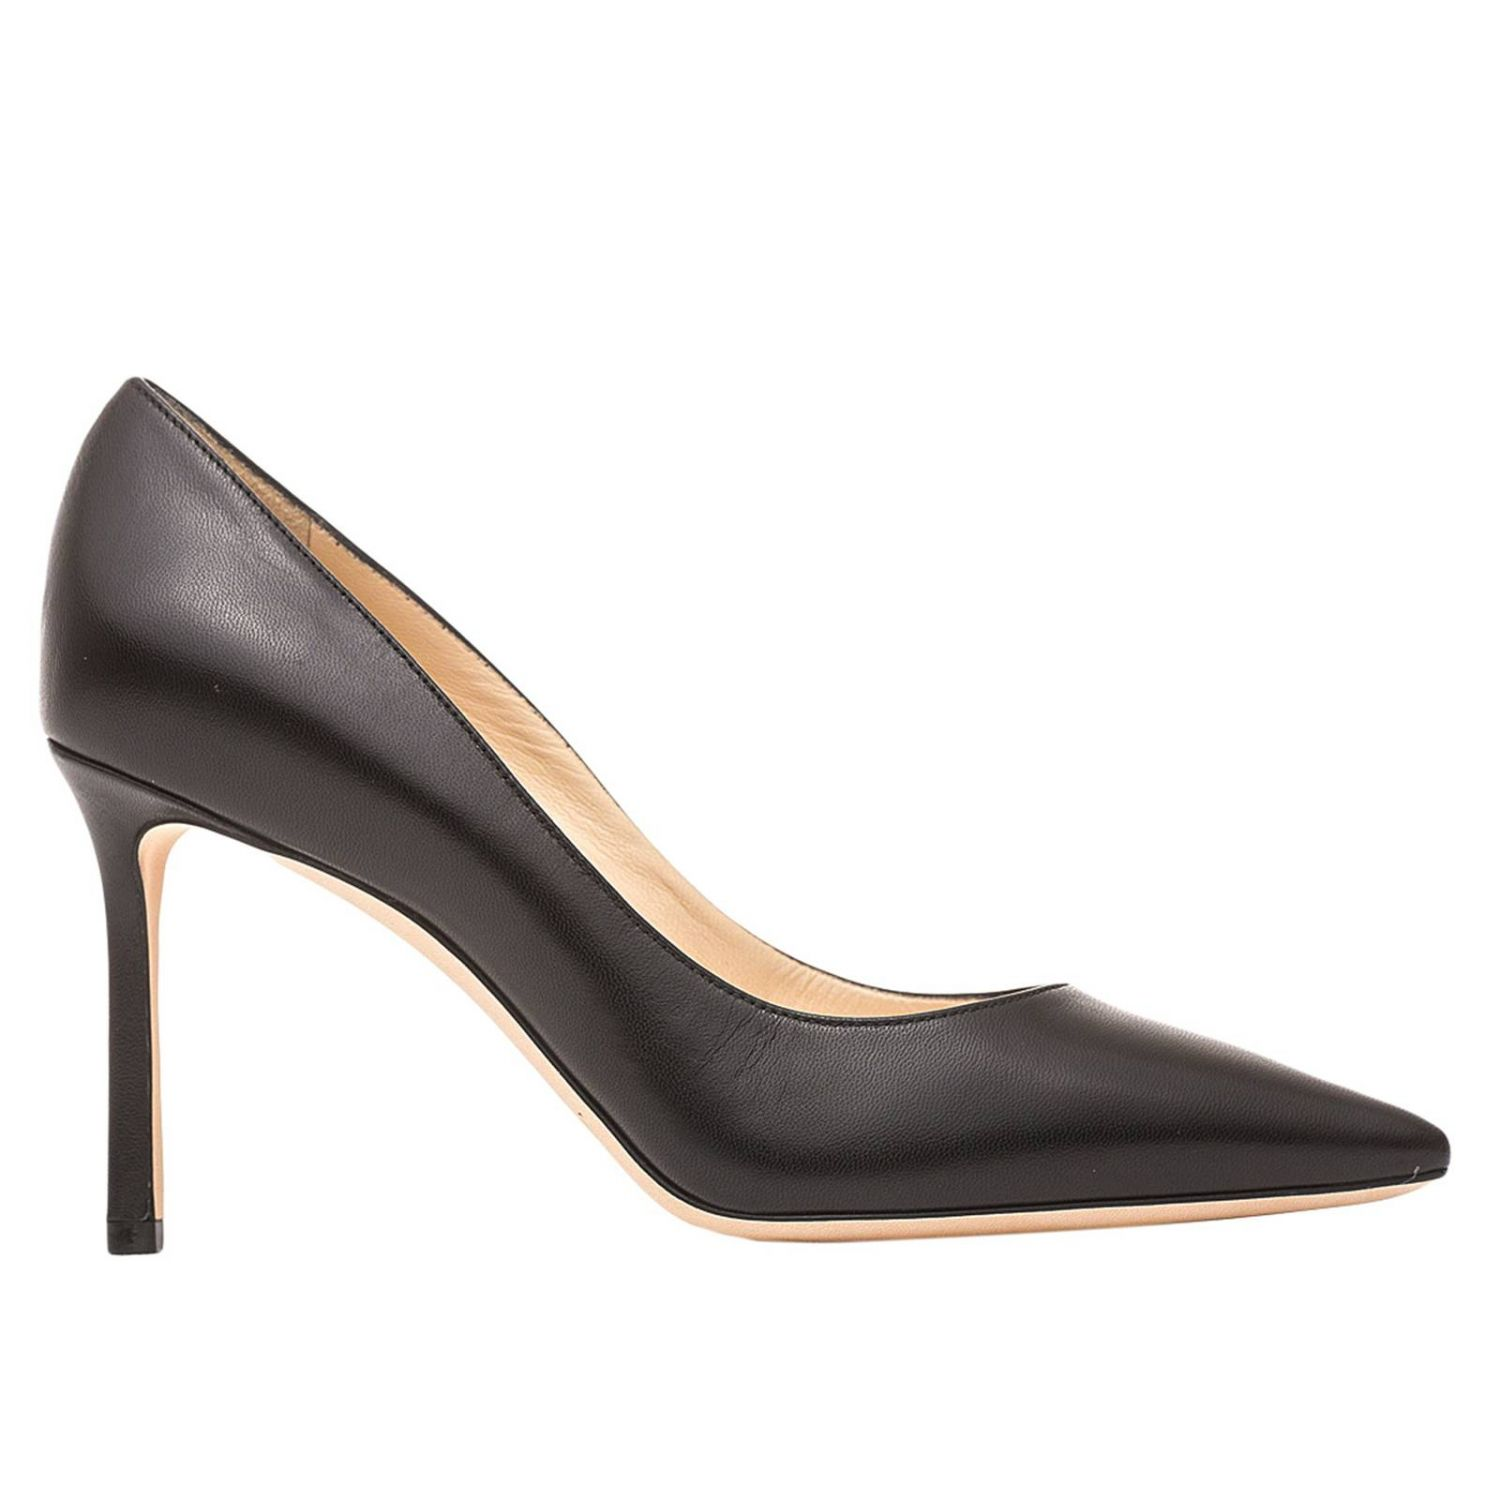 JIMMY CHOO | Court Shoes Court Shoes Women Jimmy Choo | Goxip